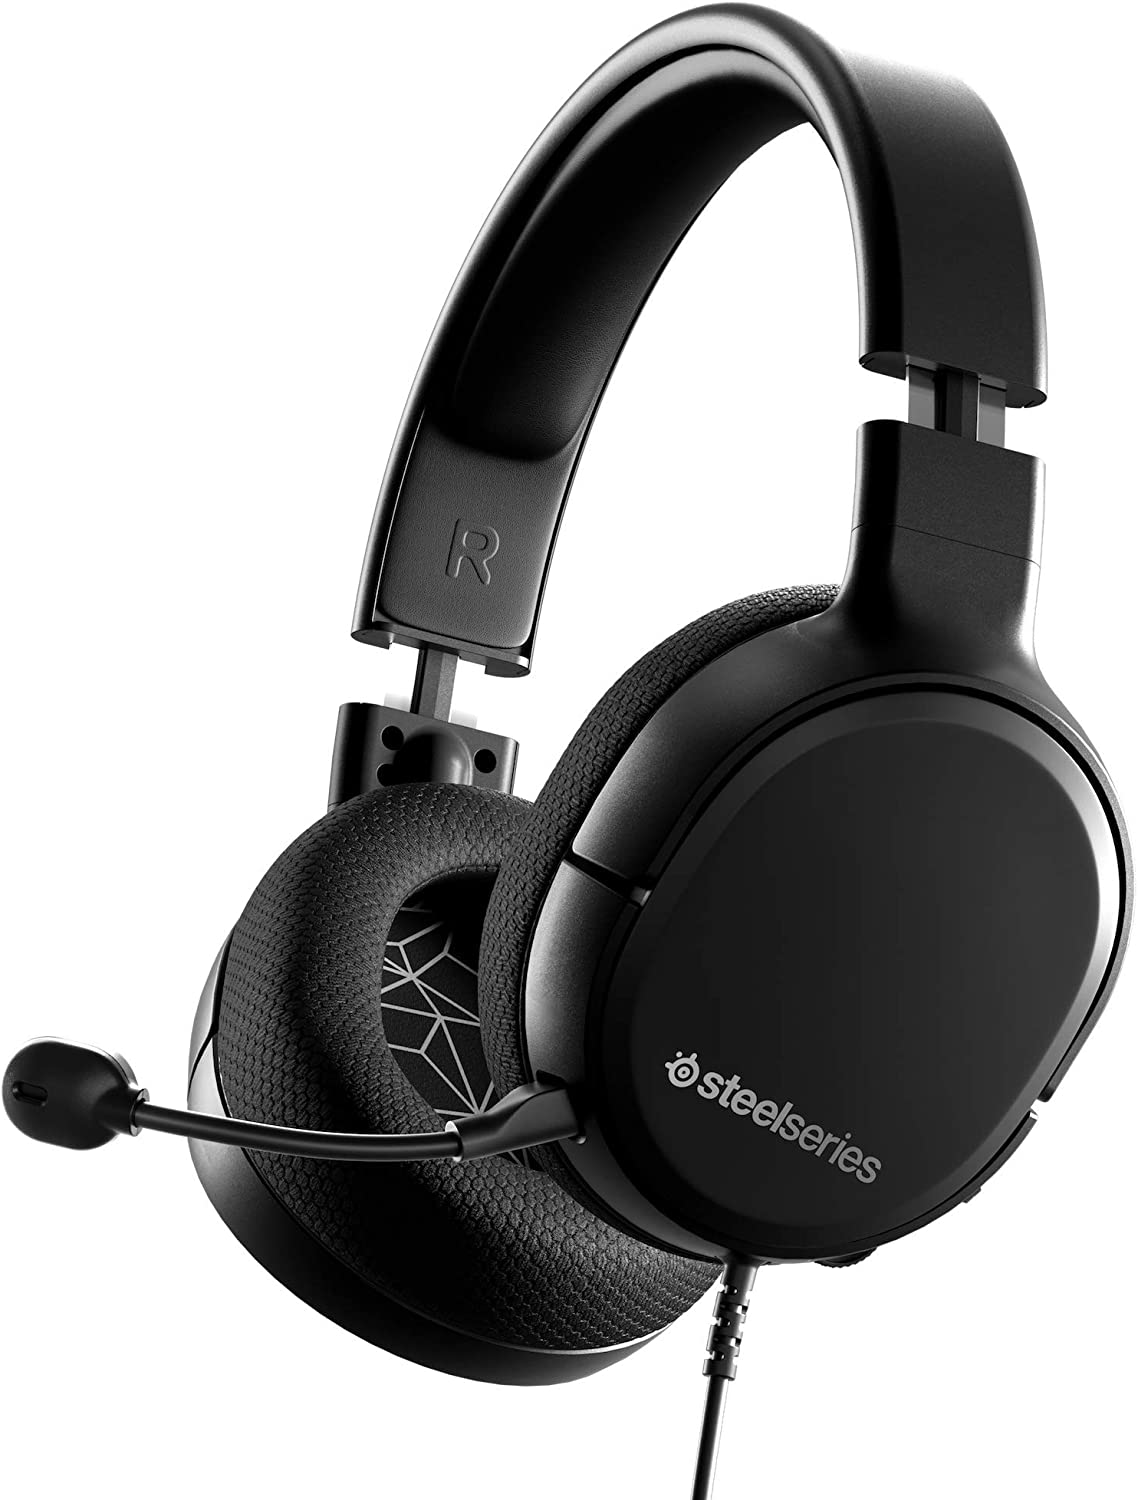 SteelSeries Arctis 1 – Auriculares Gaming, Compatibilidad con Todas Las Plataformas, para PC, PS4, Xbox, Nintendo Switch, Móvil, Micro ClearCast Desmontable